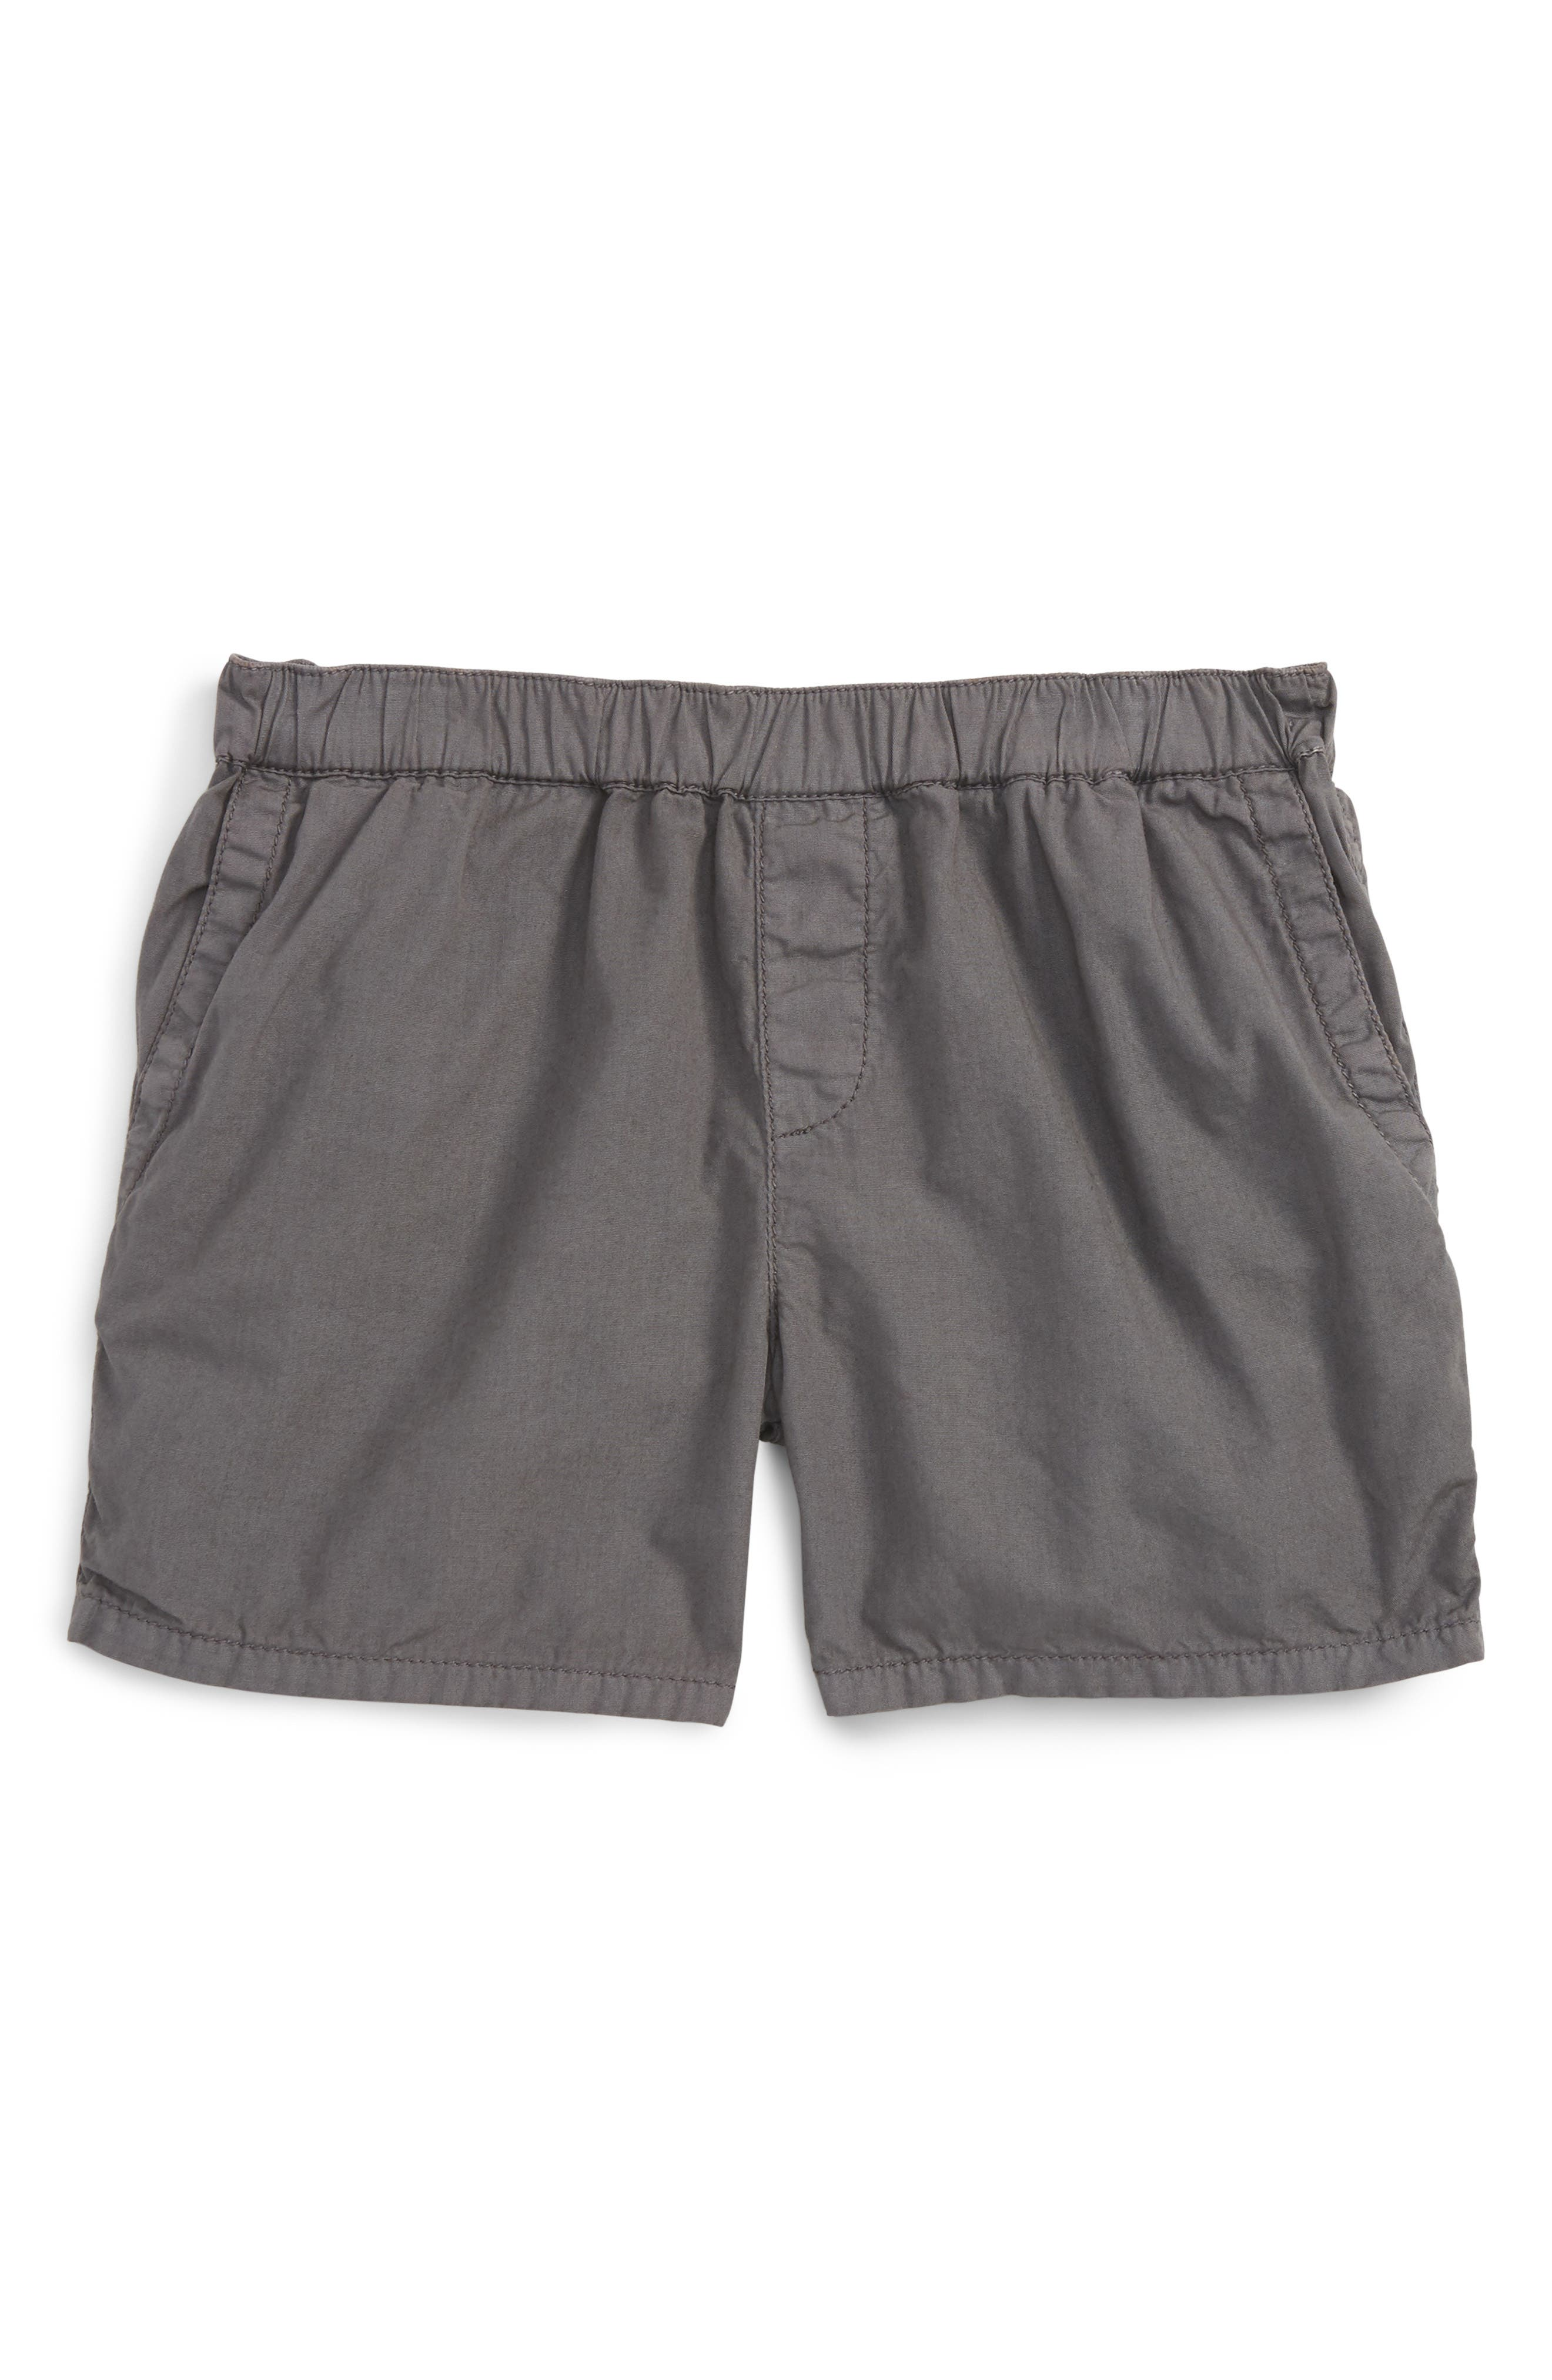 Alternate Image 1 Selected - Peek Cotton Twill Shorts (Baby Boys)